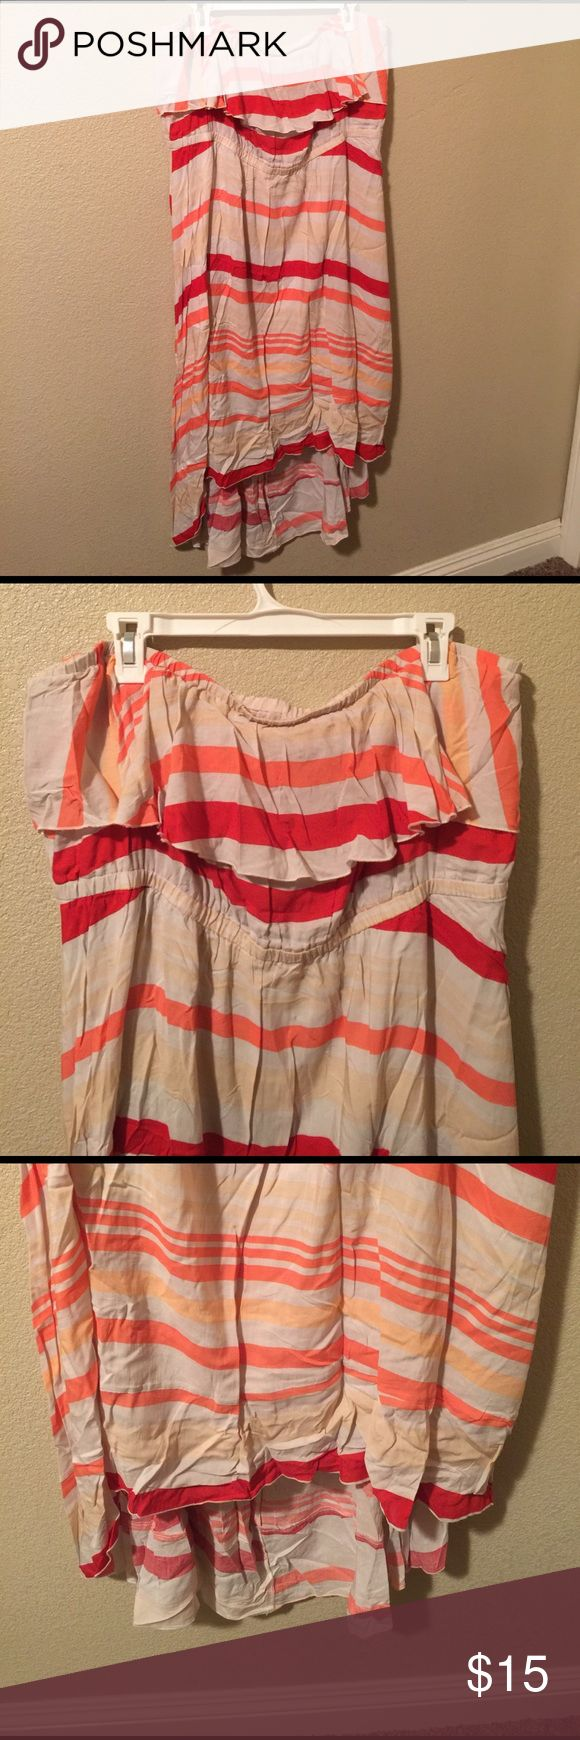 American Rag highlow tube top dress 3x American Rag highlow tube top dress 3x. Yes it's wrinkled, it's been in a box of clothes that no longer fit. It can be steamed/ironed. Really cute high low accent with a ruffle around the bust Dresses High Low